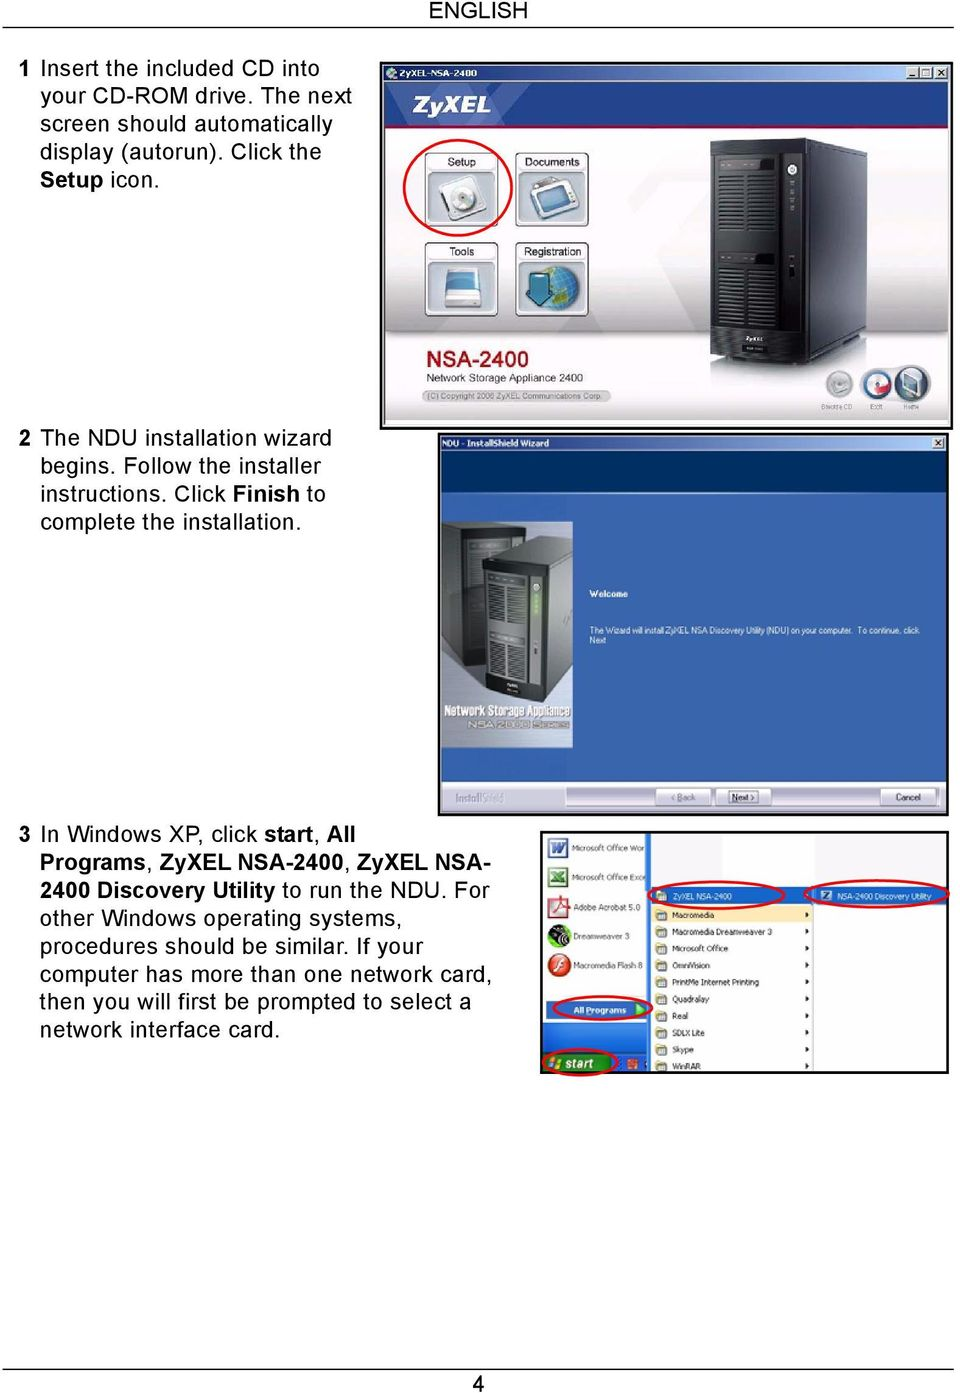 3 In Windows XP, click start, All Programs, ZyXEL NSA-2400, ZyXEL NSA- 2400 Discovery Utility to run the NDU.